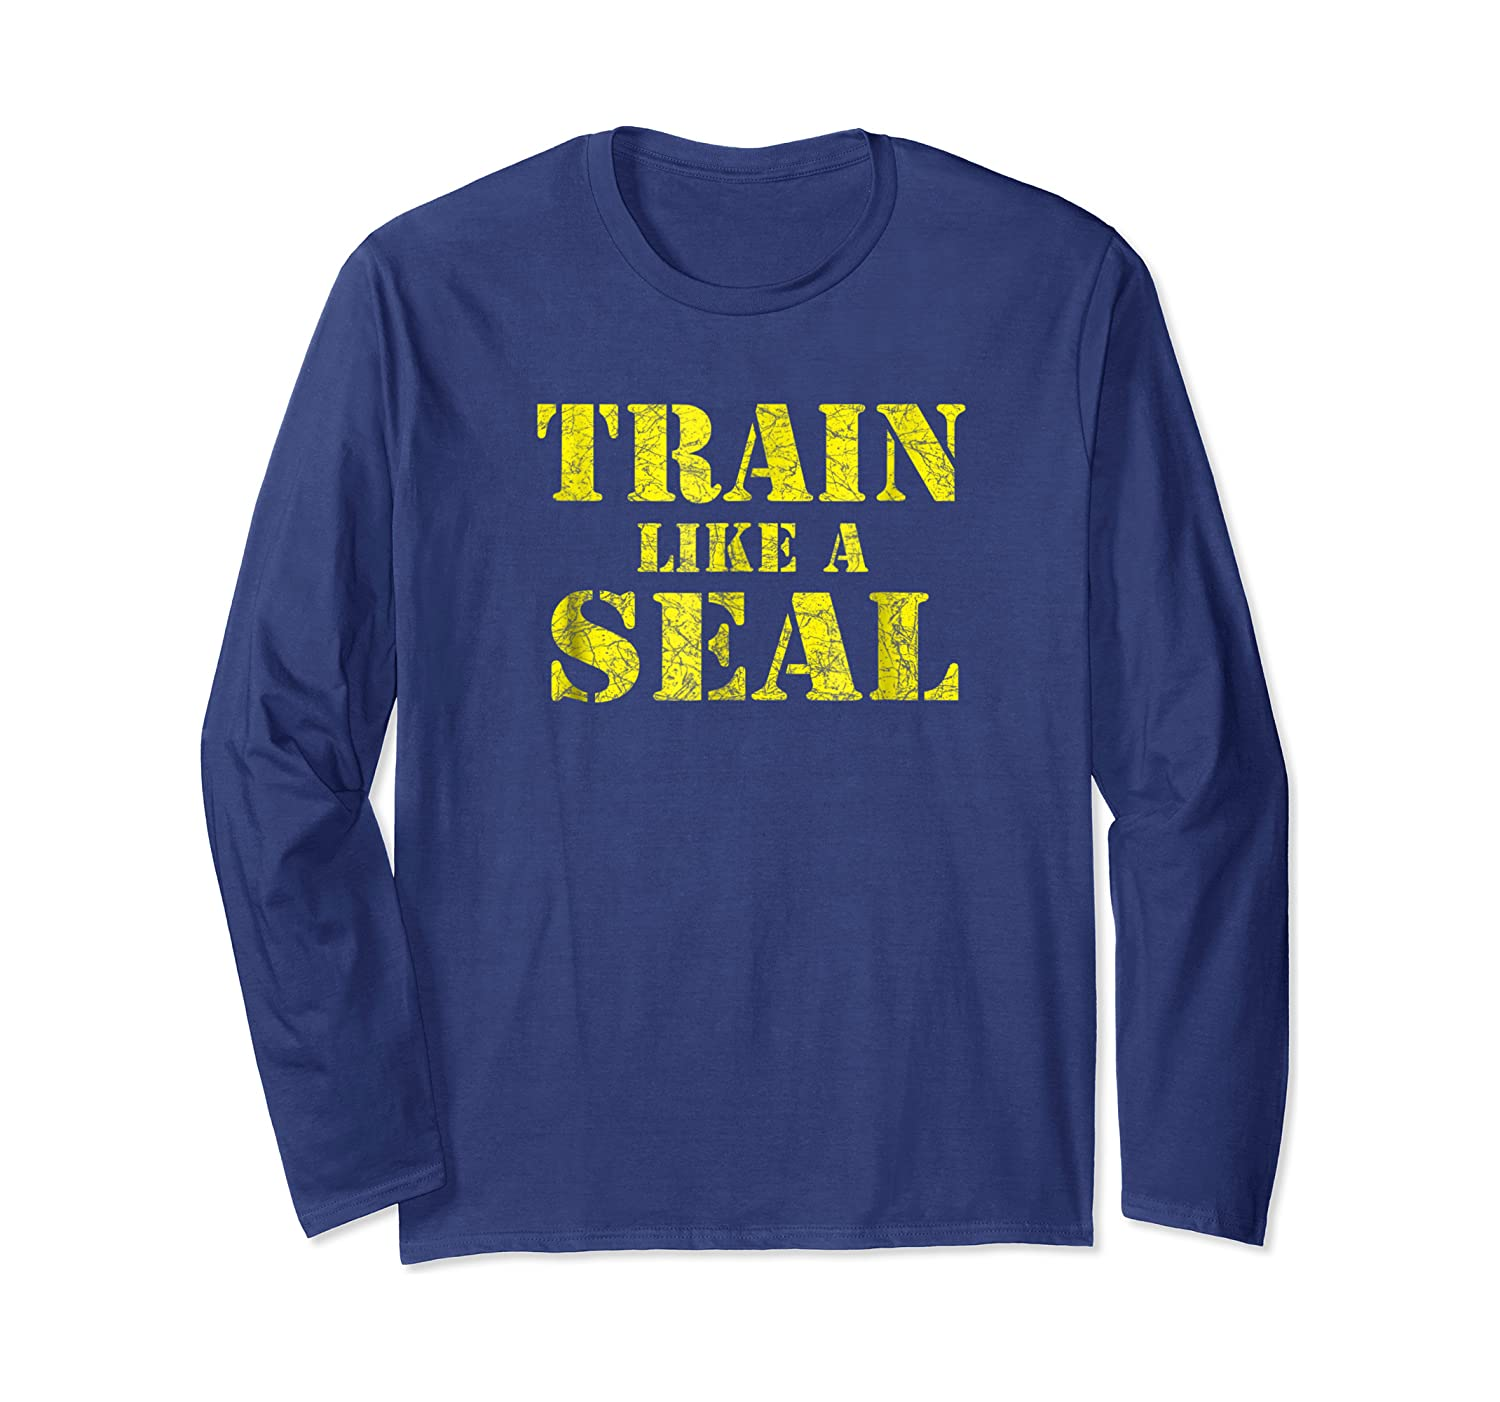 Like A Navy Seal Navy Seal Armed Forces Shirts Long Sleeve T-shirt